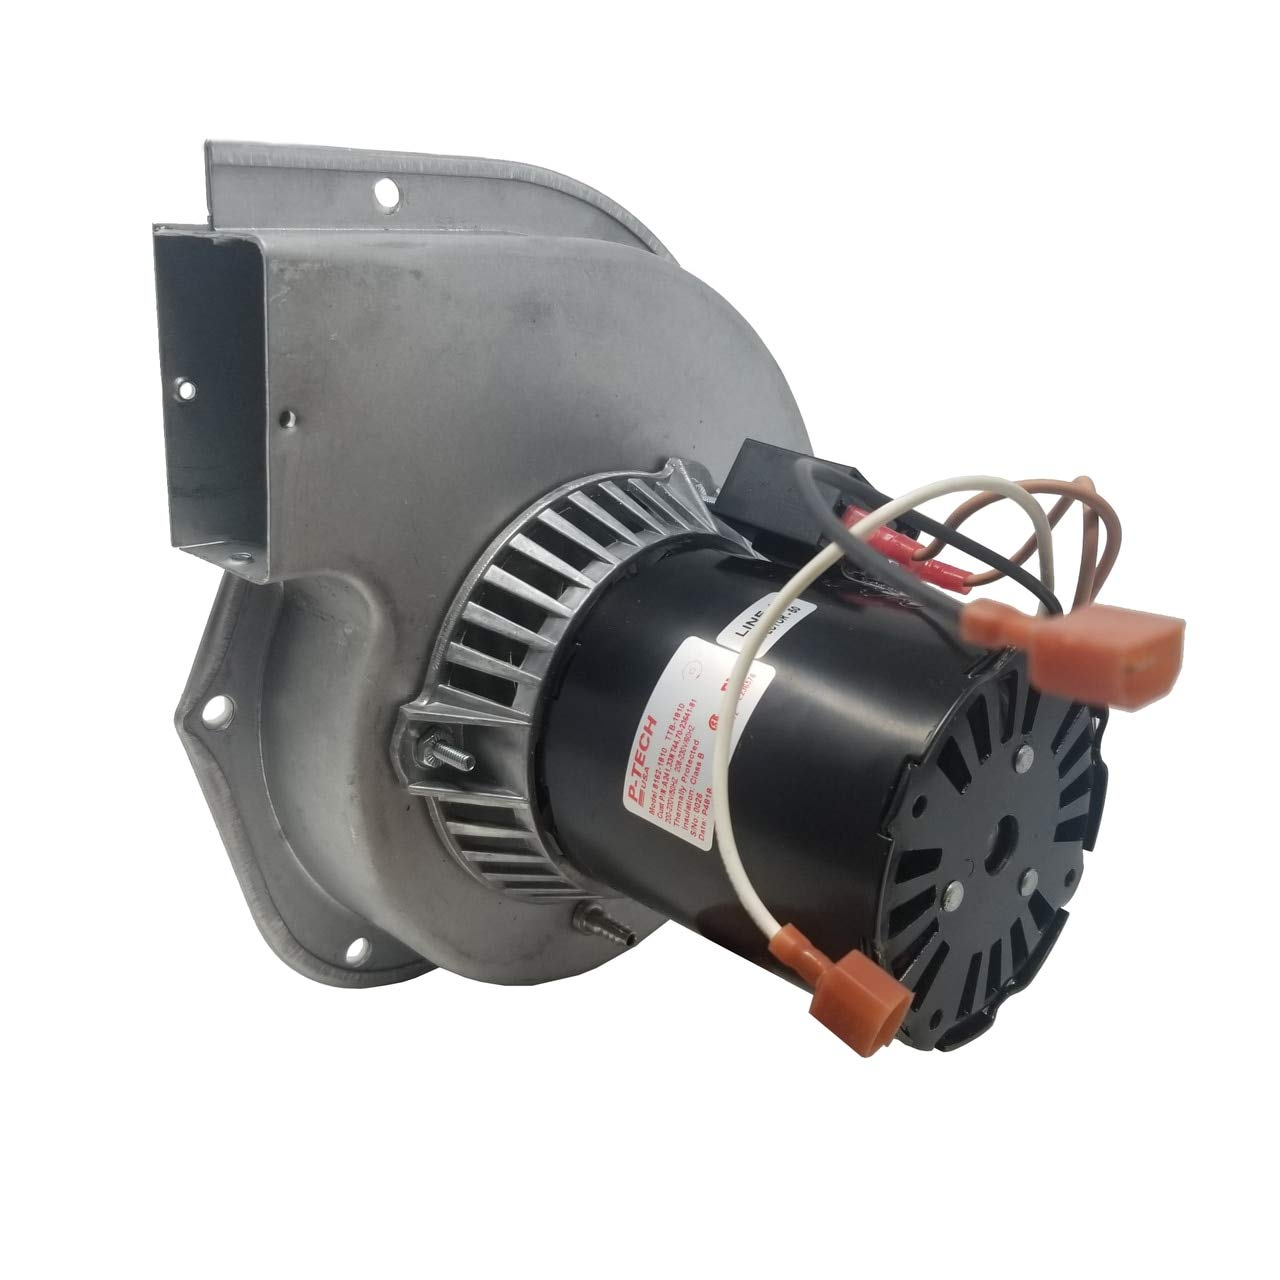 3.3 Inch Diameter Permanent Split Capacitor Centrifugal Blower | Replaces: Fasco A241 & Rheem/Ruud 7021-9567, 70-23641-81 by P-Tech (Image #1)